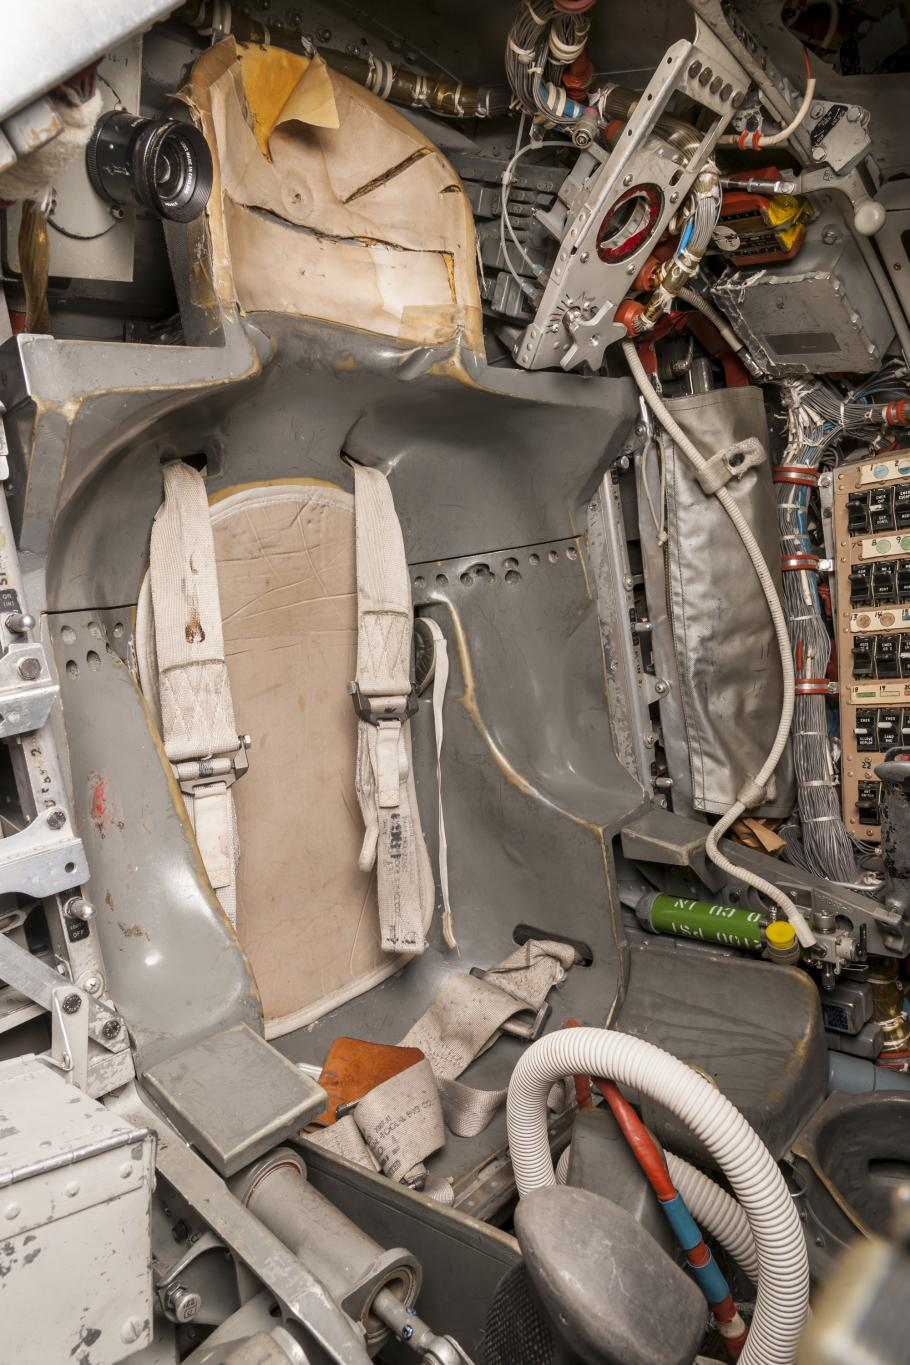 A Closer Look At The Friendship 7 Spacecraft Auto Window Wiring Diagram Seat John Glenn Sat In For Mission Known As Couch Was Custom Made To Fit Him And His Spacesuit During Size Of